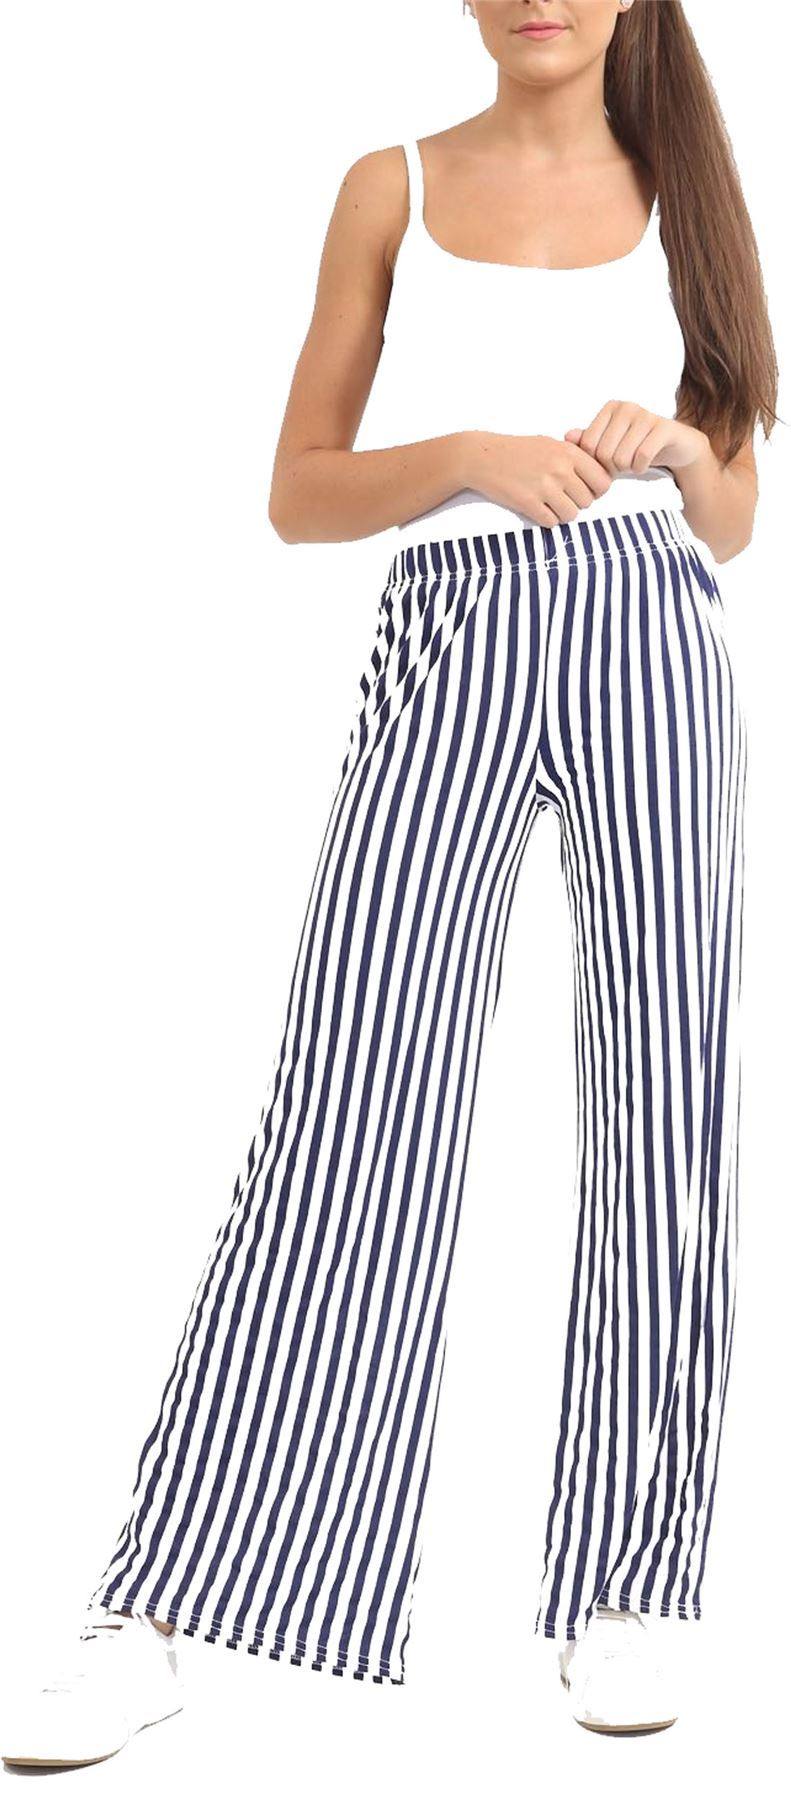 New-Ladies-Floral-Printed-Wide-Leg-Flared-Parallel-Baggy-Trousers-Pants-Palazzo thumbnail 50